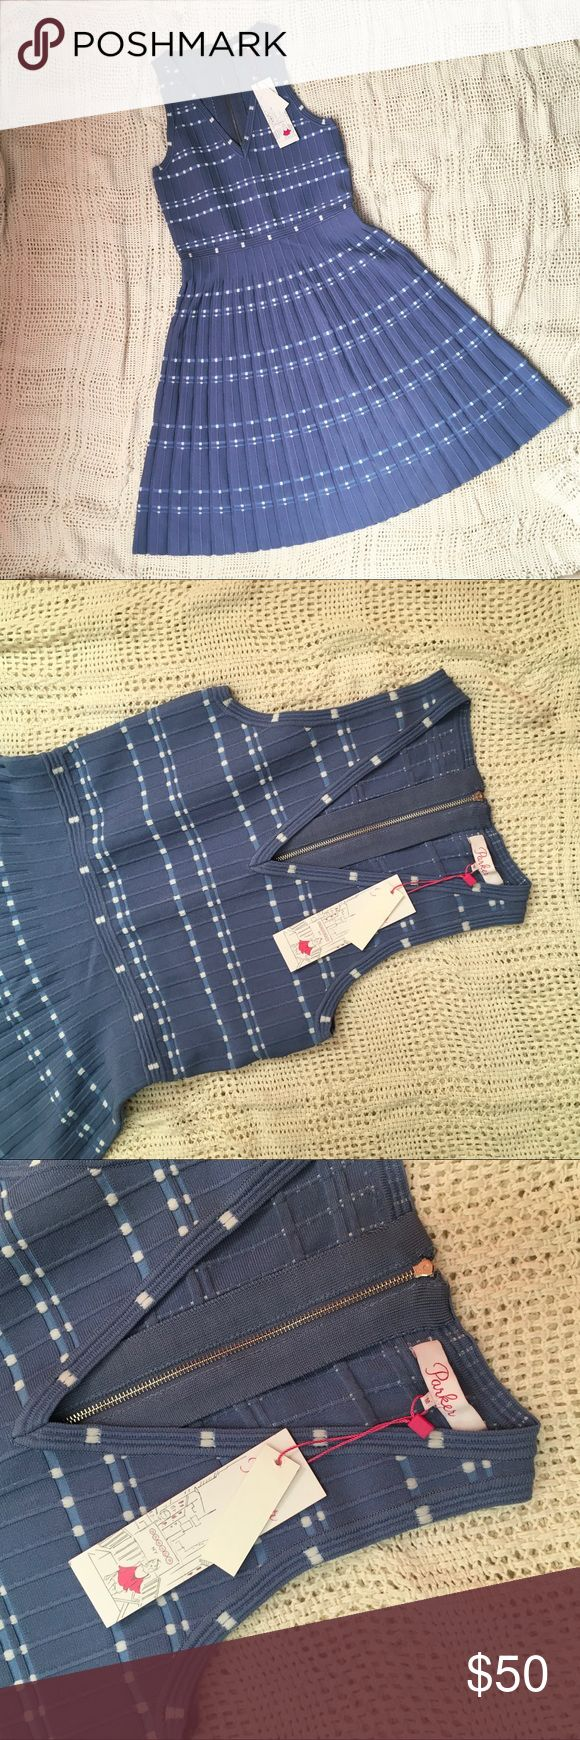 PARKER STITCH FIX BECKY KNIT DRESS MEDIUM BLUE Sprinkled with lots of dots, this flattering, fit and flare knit dress is one of our desk-to-drinks favorites. Just add a blazer by day and a high heel come evening, and you're ready for anything. Exposed back zip.  Size M New with tags Parker Dresses Mini